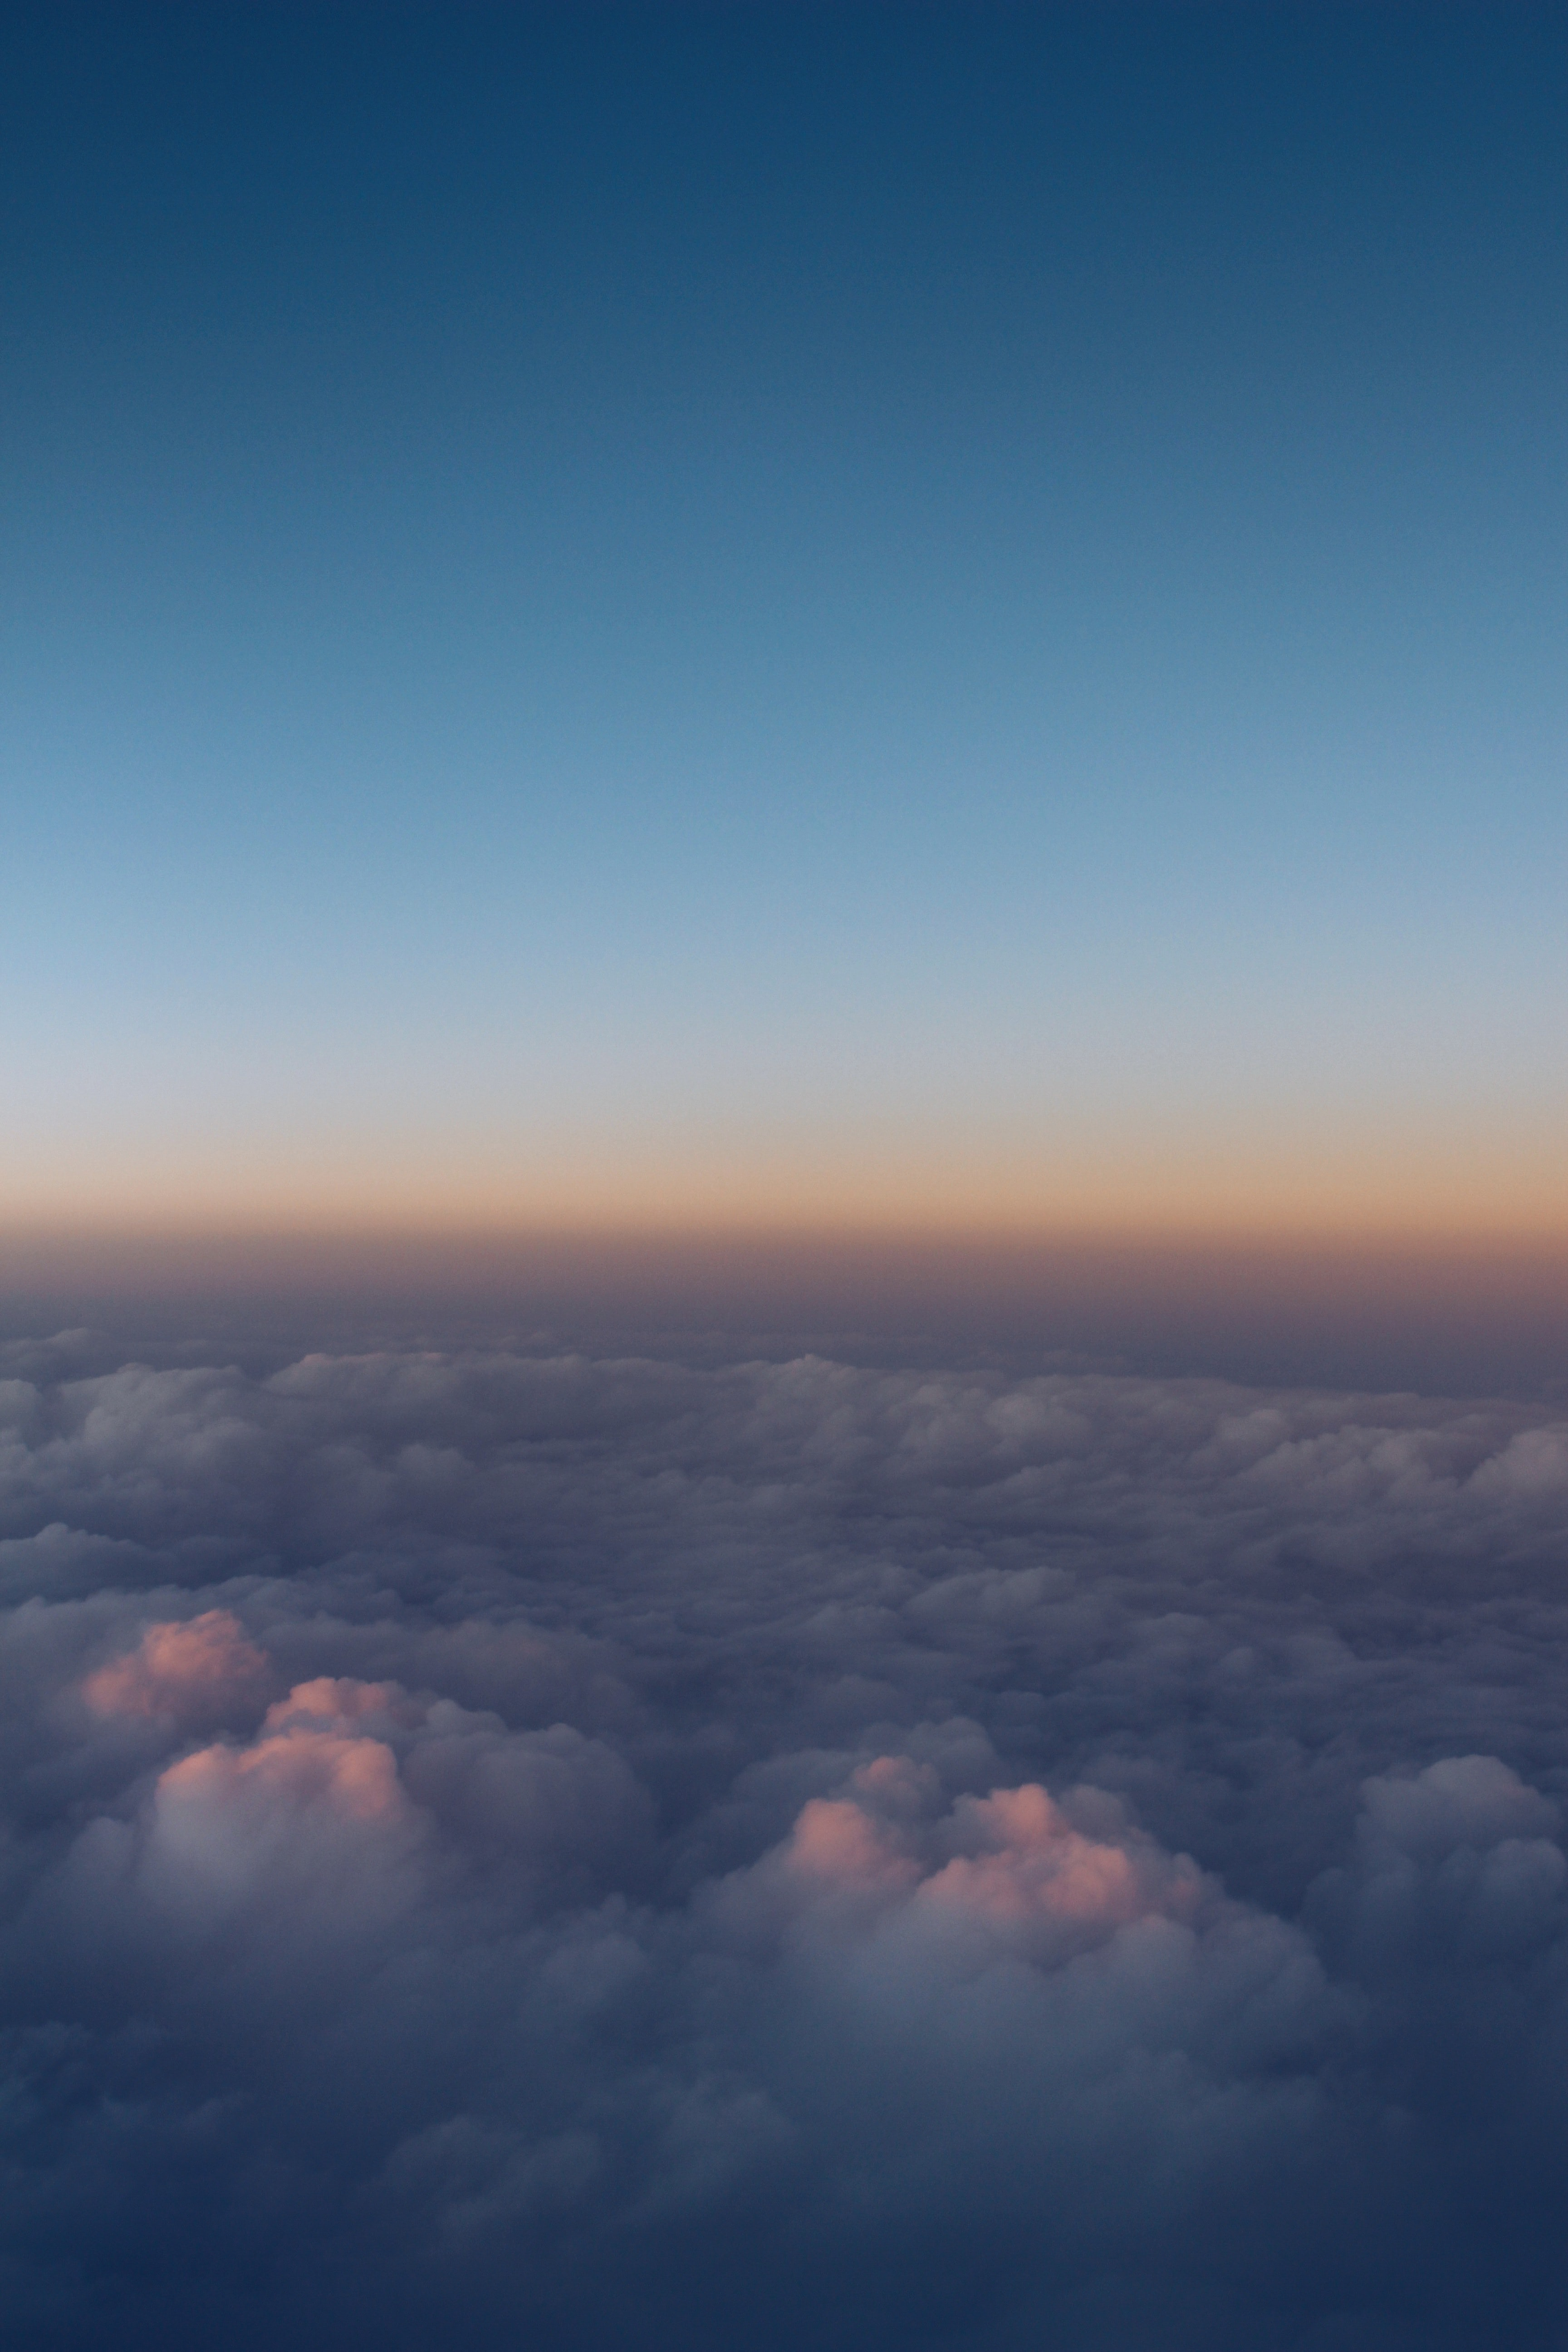 A sea of clouds seen from above during sunset